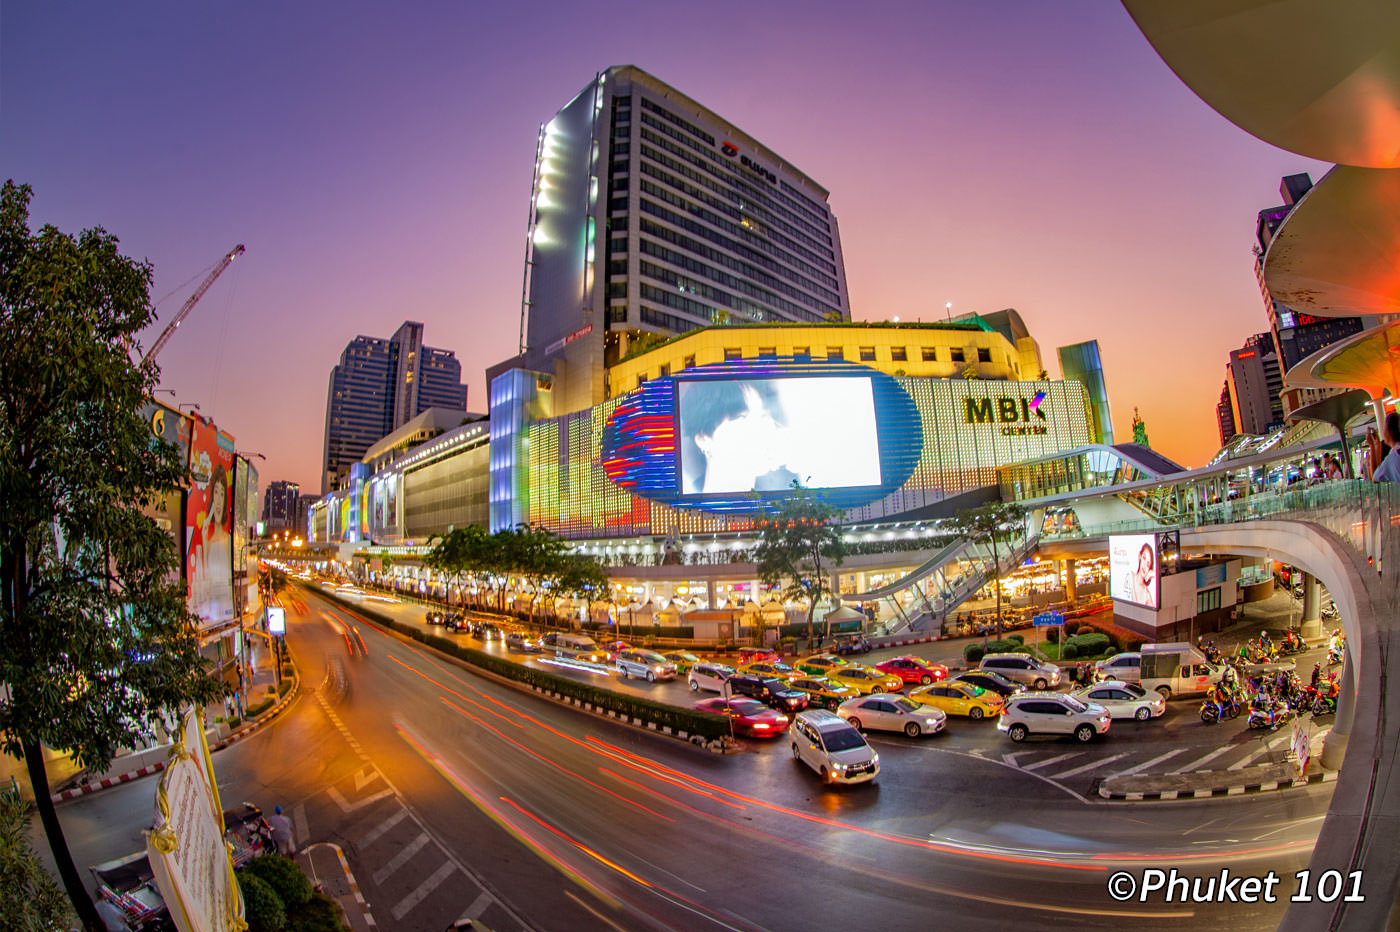 MBK Shopping Mall in Bangkok